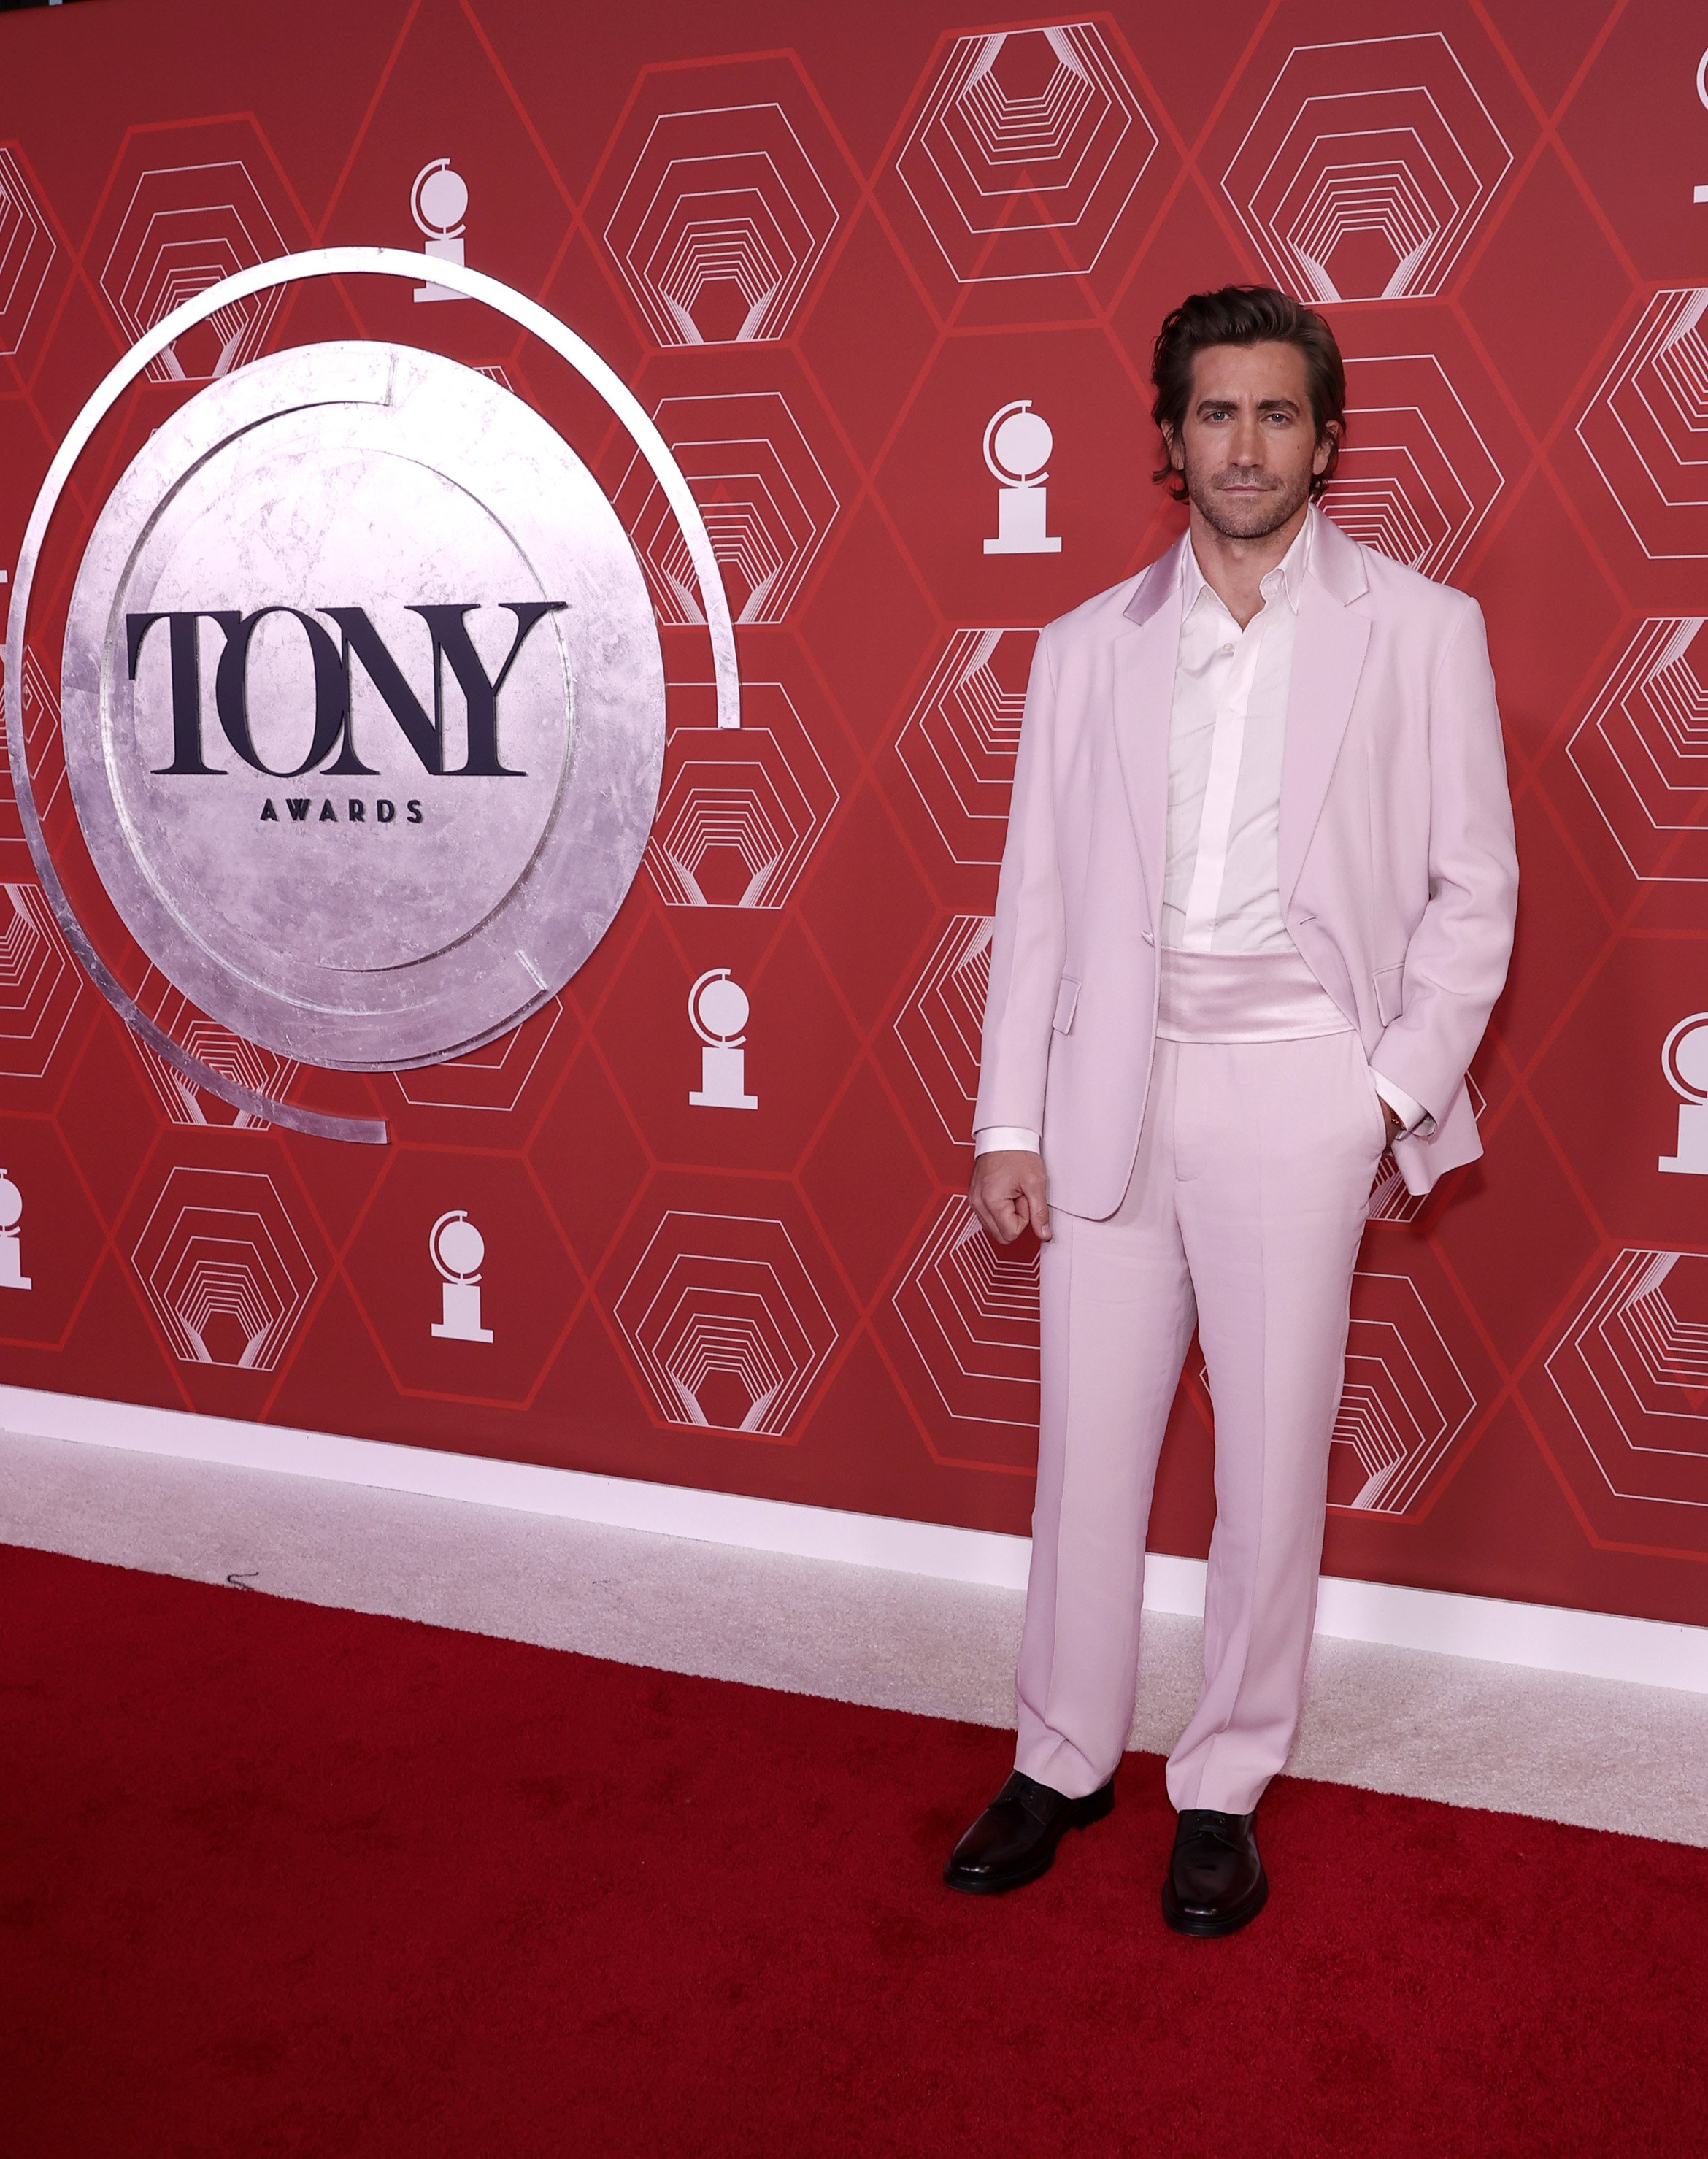 Jake Gyllenhaal attending the 74th Annual Tony Awards in New York, 2021 | Photo: Getty Images